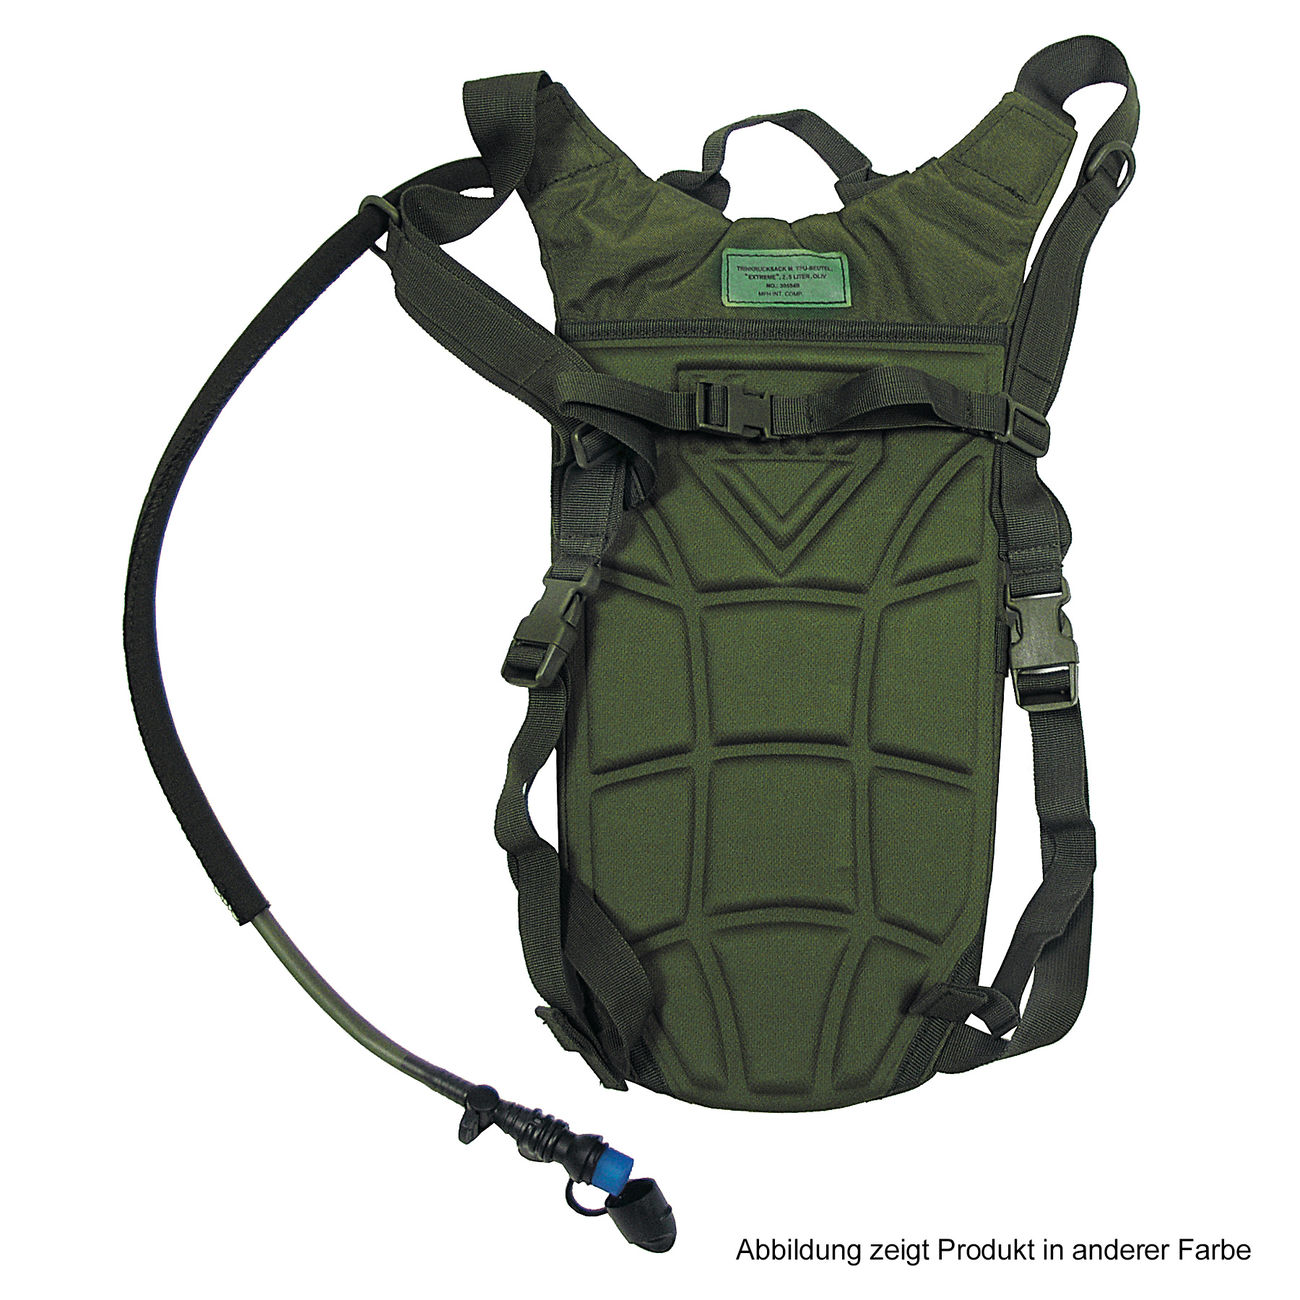 Trinkrucksack EXTREME 2,5 ltr, AT-digital 3